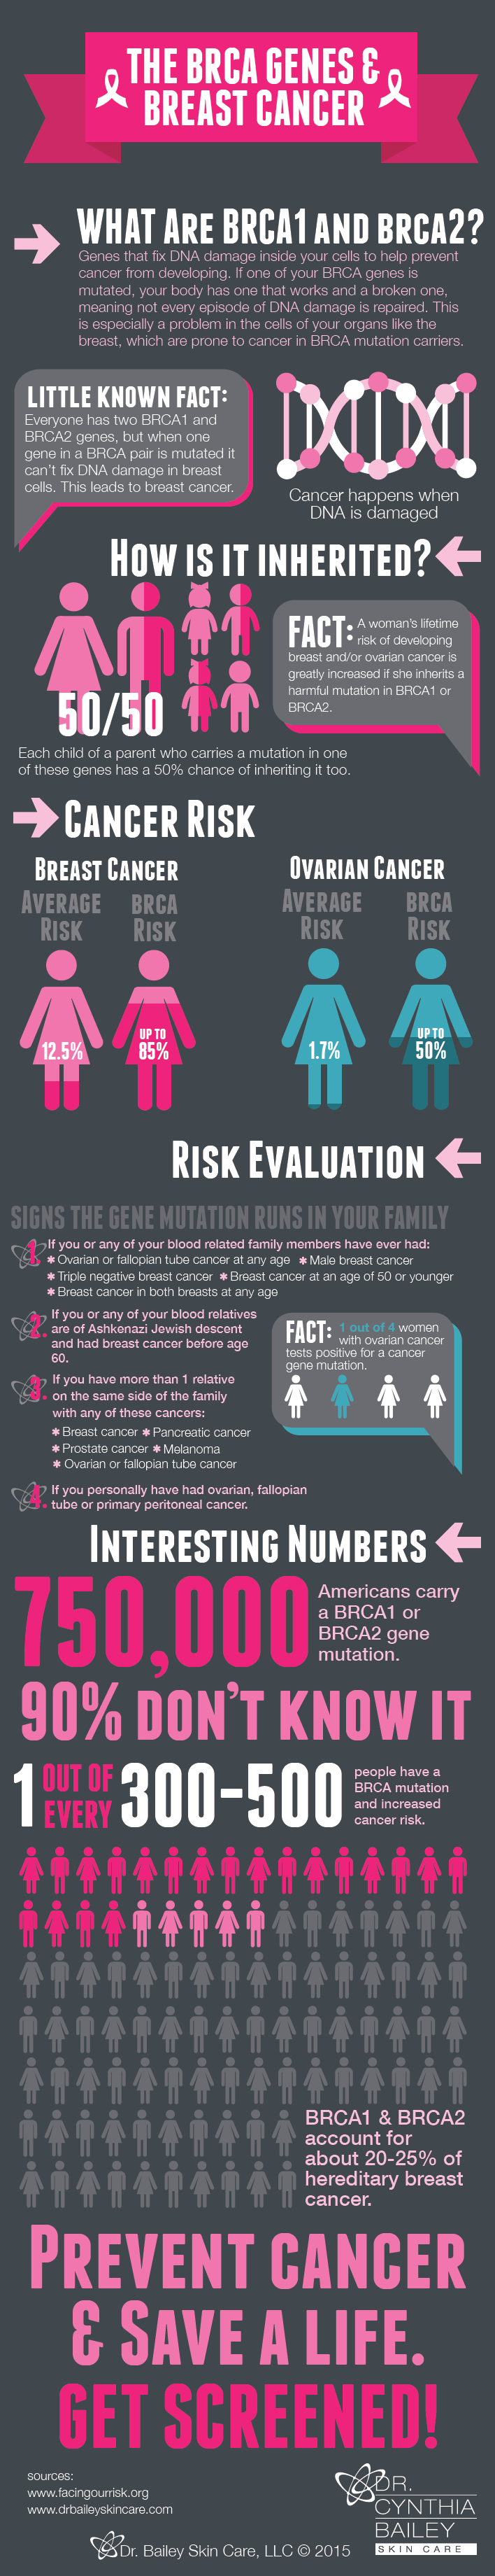 """BRCA infographics on the risk of inheritance of breast and ovarian cancer """"class ="""" wp-image-21870 """"srcset ="""" https://www.drbaileyskincare.com/info/wp-content/uploads/Large-BRCA-gene11-6-01 .png 708w, https://www.drbaileyskincare.com/info/wp-content/uploads/Large-BRCA-gene11-6-01-29x150.png 29w, https://www.drbaileyskincare.com/info/wp -content / uploads / Large-BRCA-gene11-6-01-50x260.png 50 W, https://www.drbaileyskincare.com/info/wp-content/uploads/Large-BRCA-gene11-6-01-197x1024 . PNG 197 W """"dimensions ="""" (maximum width: 708 pixels) 100 W, 708 pixels"""